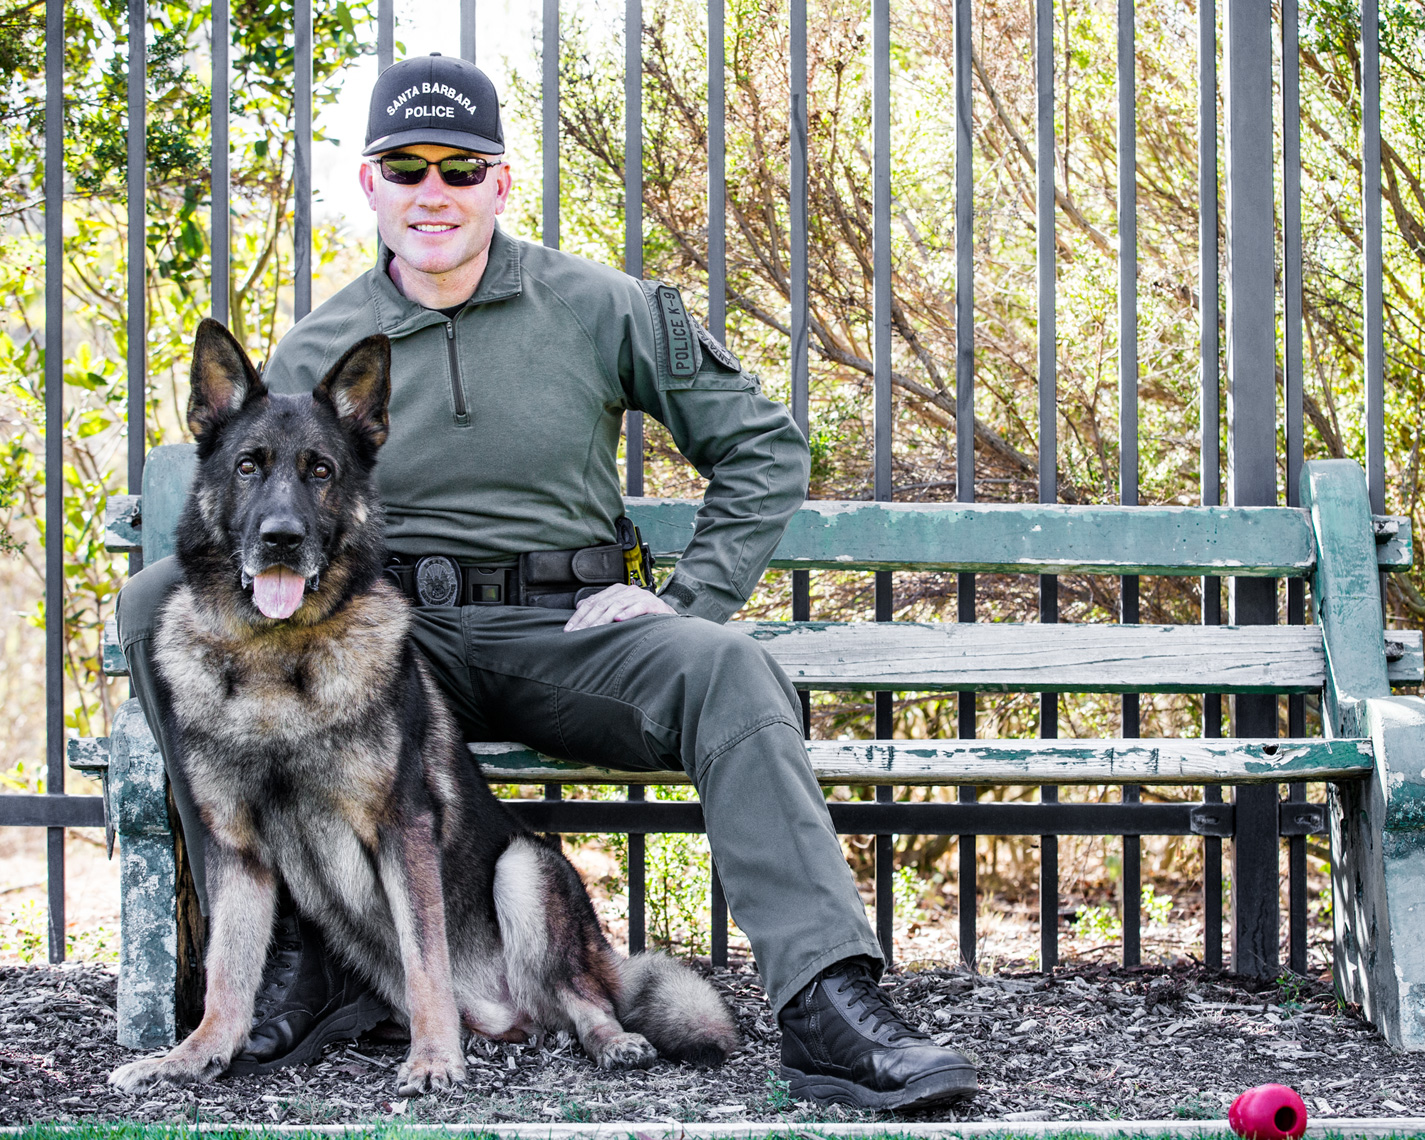 Los Angeles Dog Photography, Michael Brian, Officer David Hedges with Police K-9 Brag, SBPD, Santa Barbara Police Department